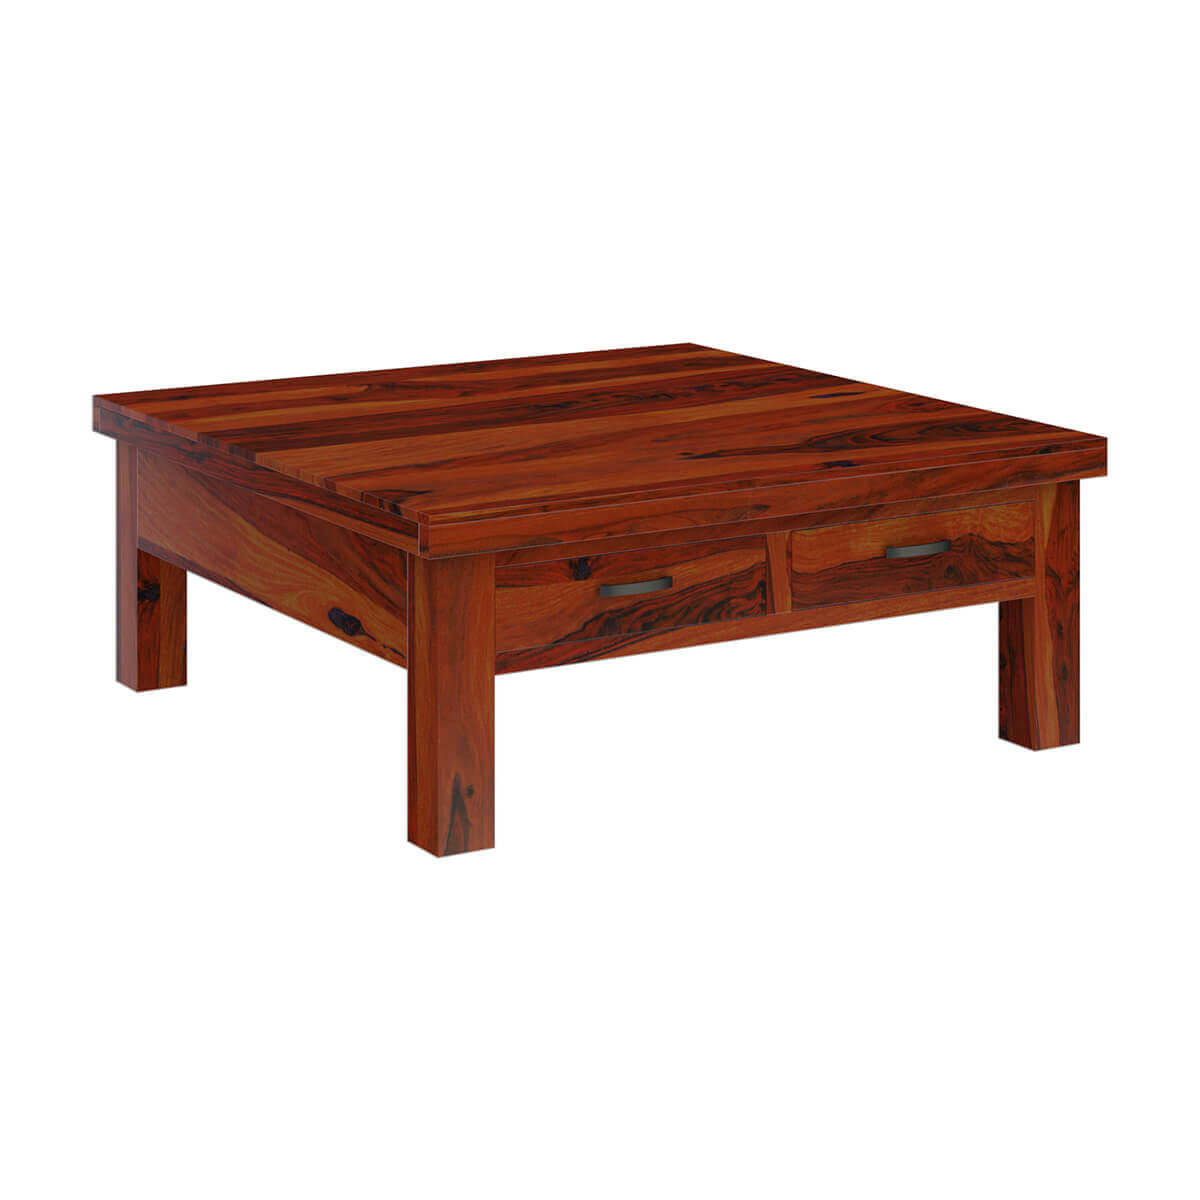 Square Coffee Table: Cheverly Modern Style Solid Wood 4 Drawers Square Coffee Table